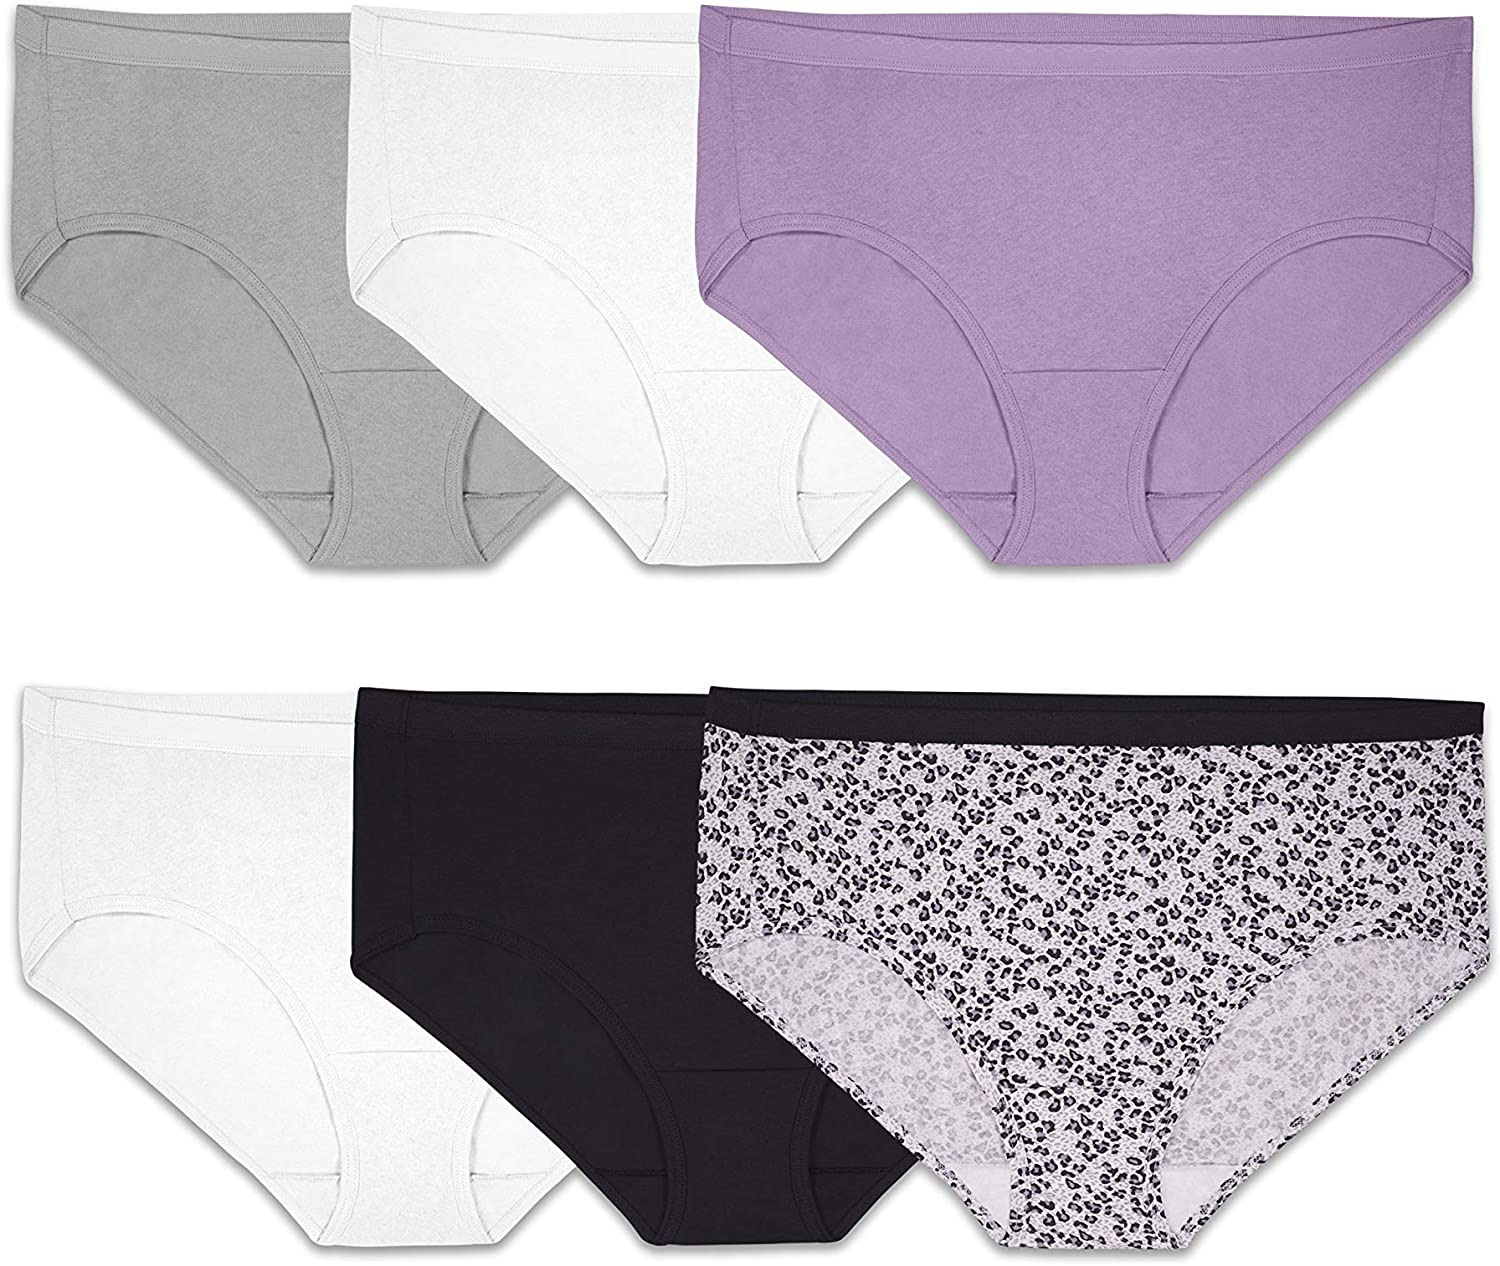 Fruit of the Loom Women's Tag Free Cotton Hipster Panties (Regular & Plus Size)